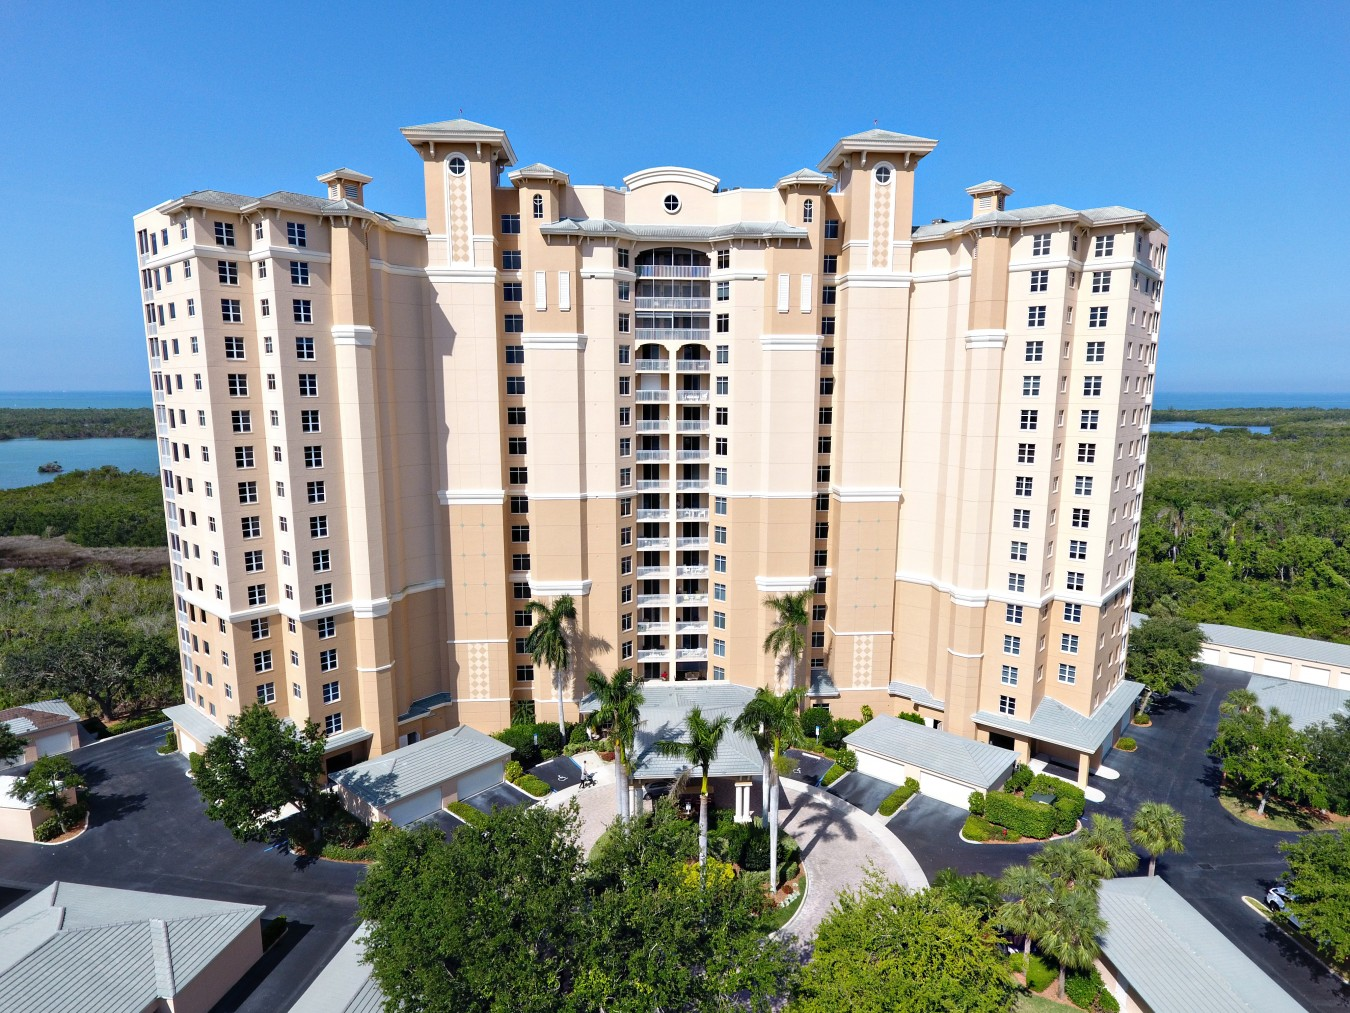 Aerial view of Tower Pointe High-Rise